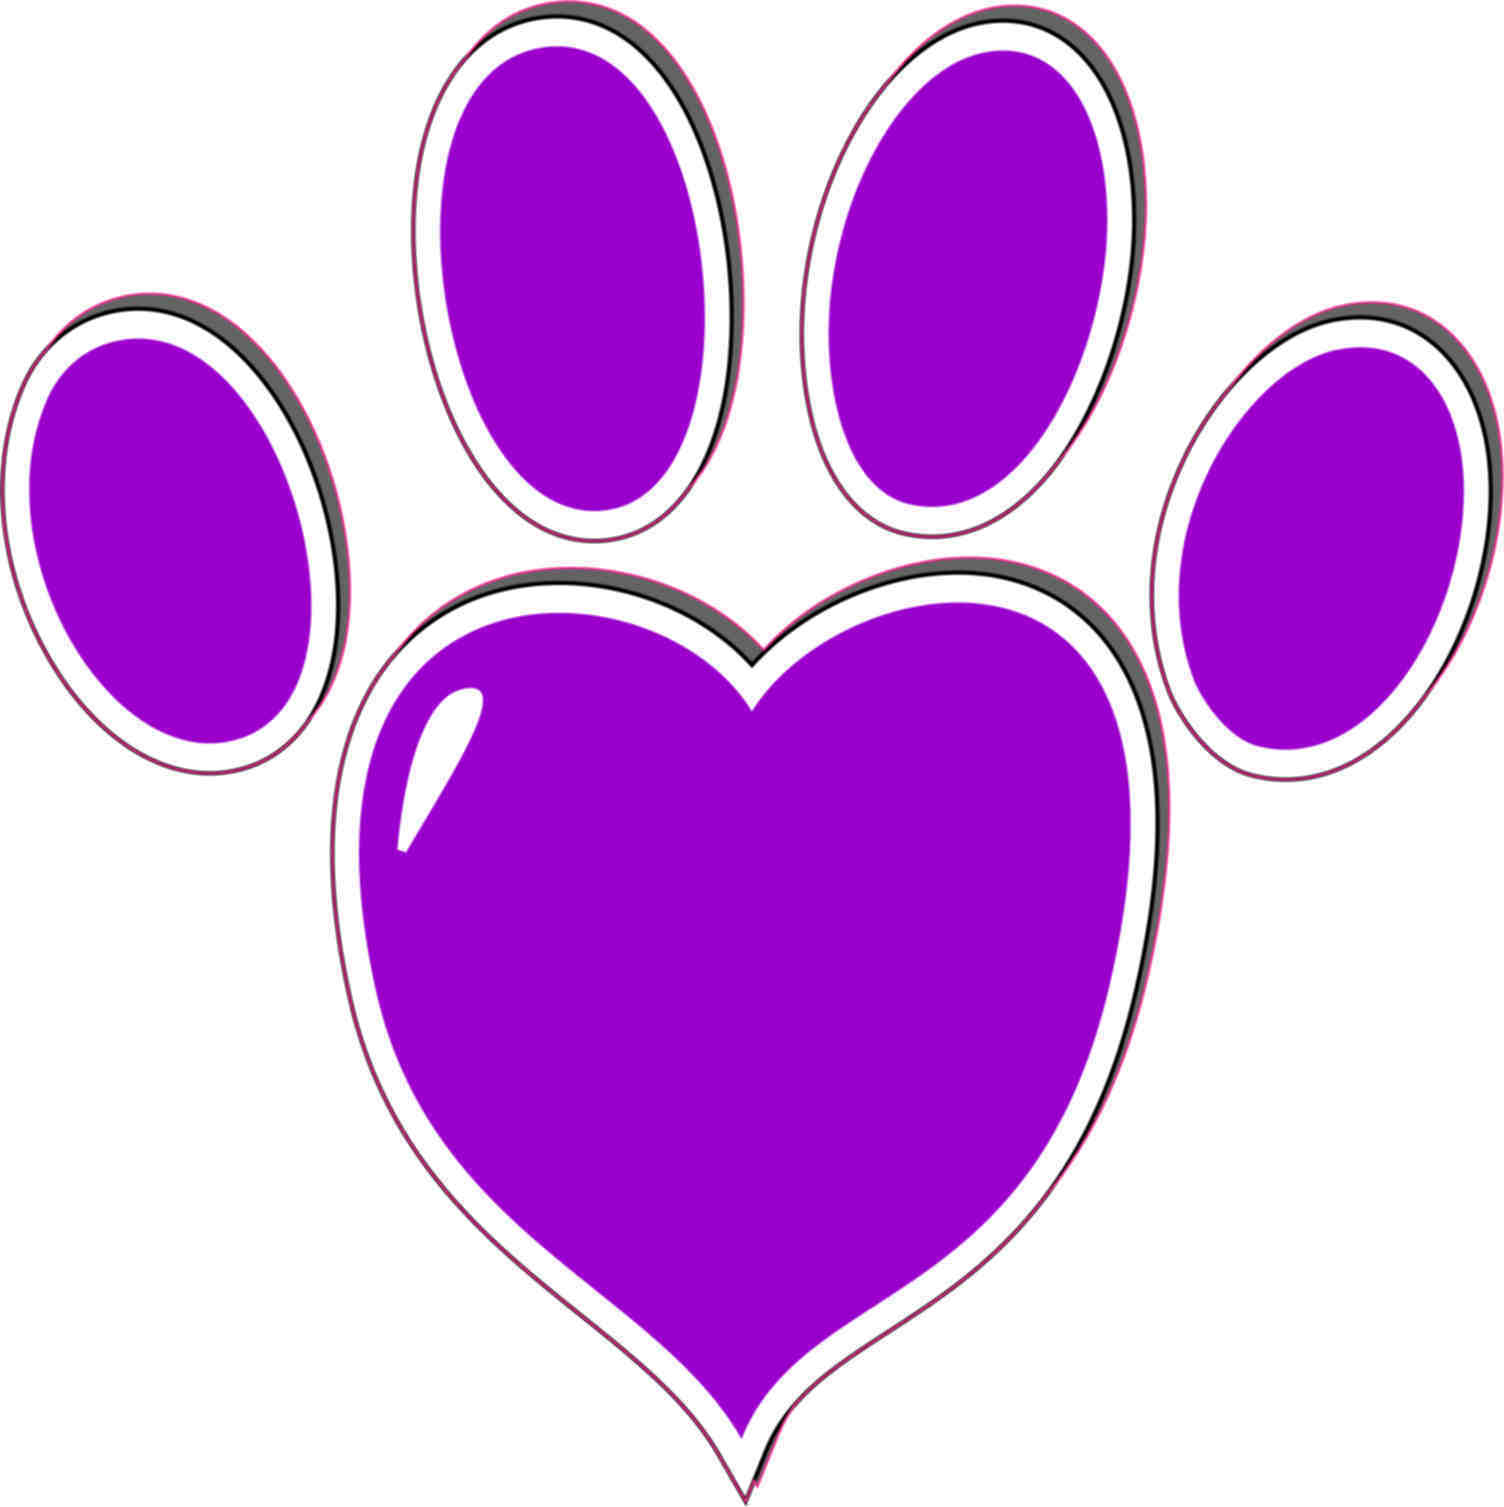 1504x1507 5x5 Purple Heart Paw Print Bumper Sticker Vinyl Vehicle Window